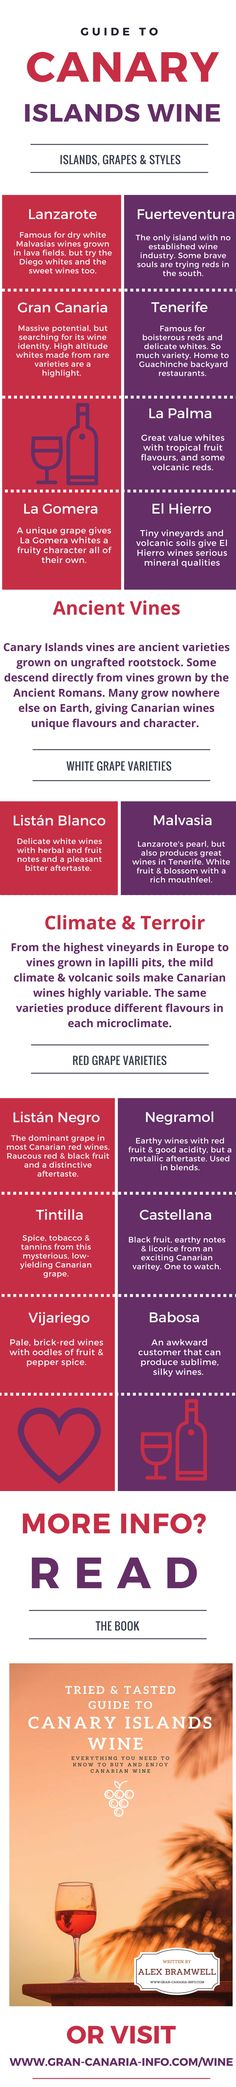 Infographic with detailed information about the wine and grapes of the Canary Islands including Tenerife, Lanzarote, Gran Canaria, La Gomera, La Palma & El Hierro. See link for the book about Canary Islands wine.